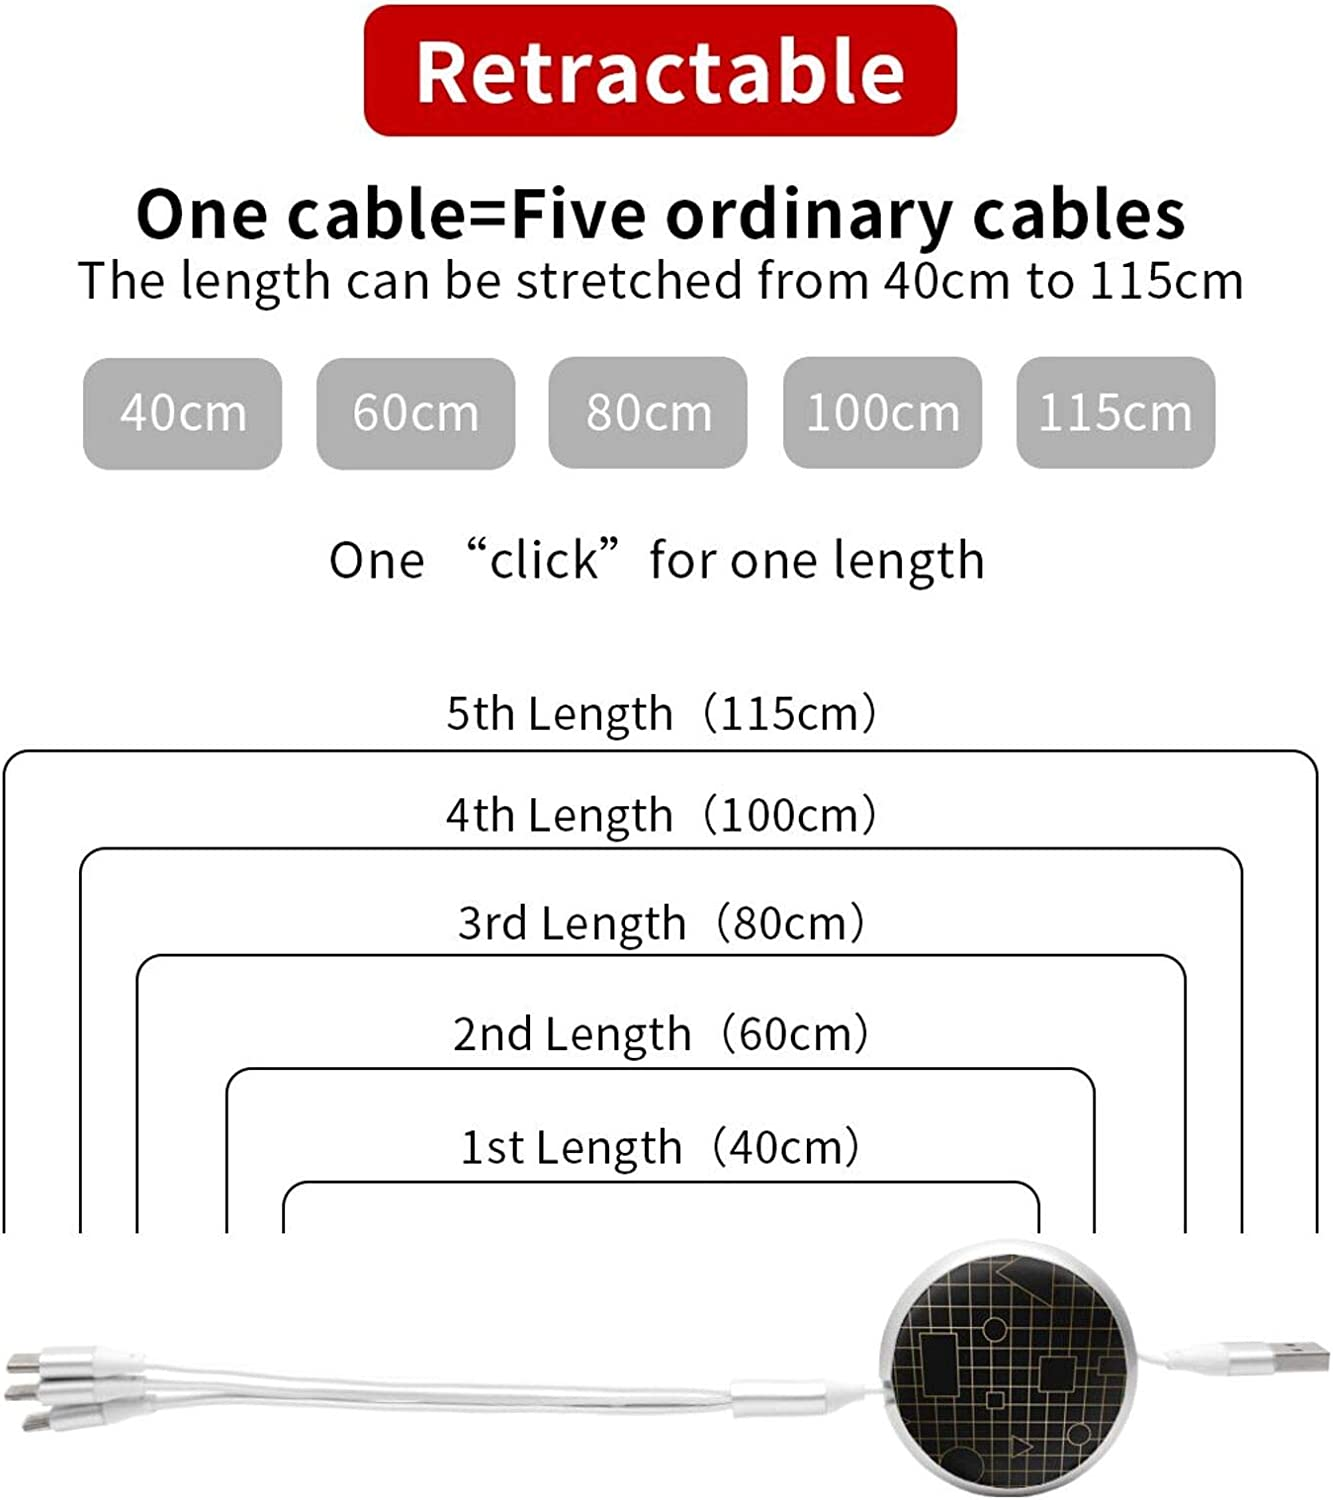 Multi Charging Cable Portable 3 in 1 Pattern with Geometric Shapes USB Cable USB Power Cords for Cell Phone Tablets and More Devices Charging